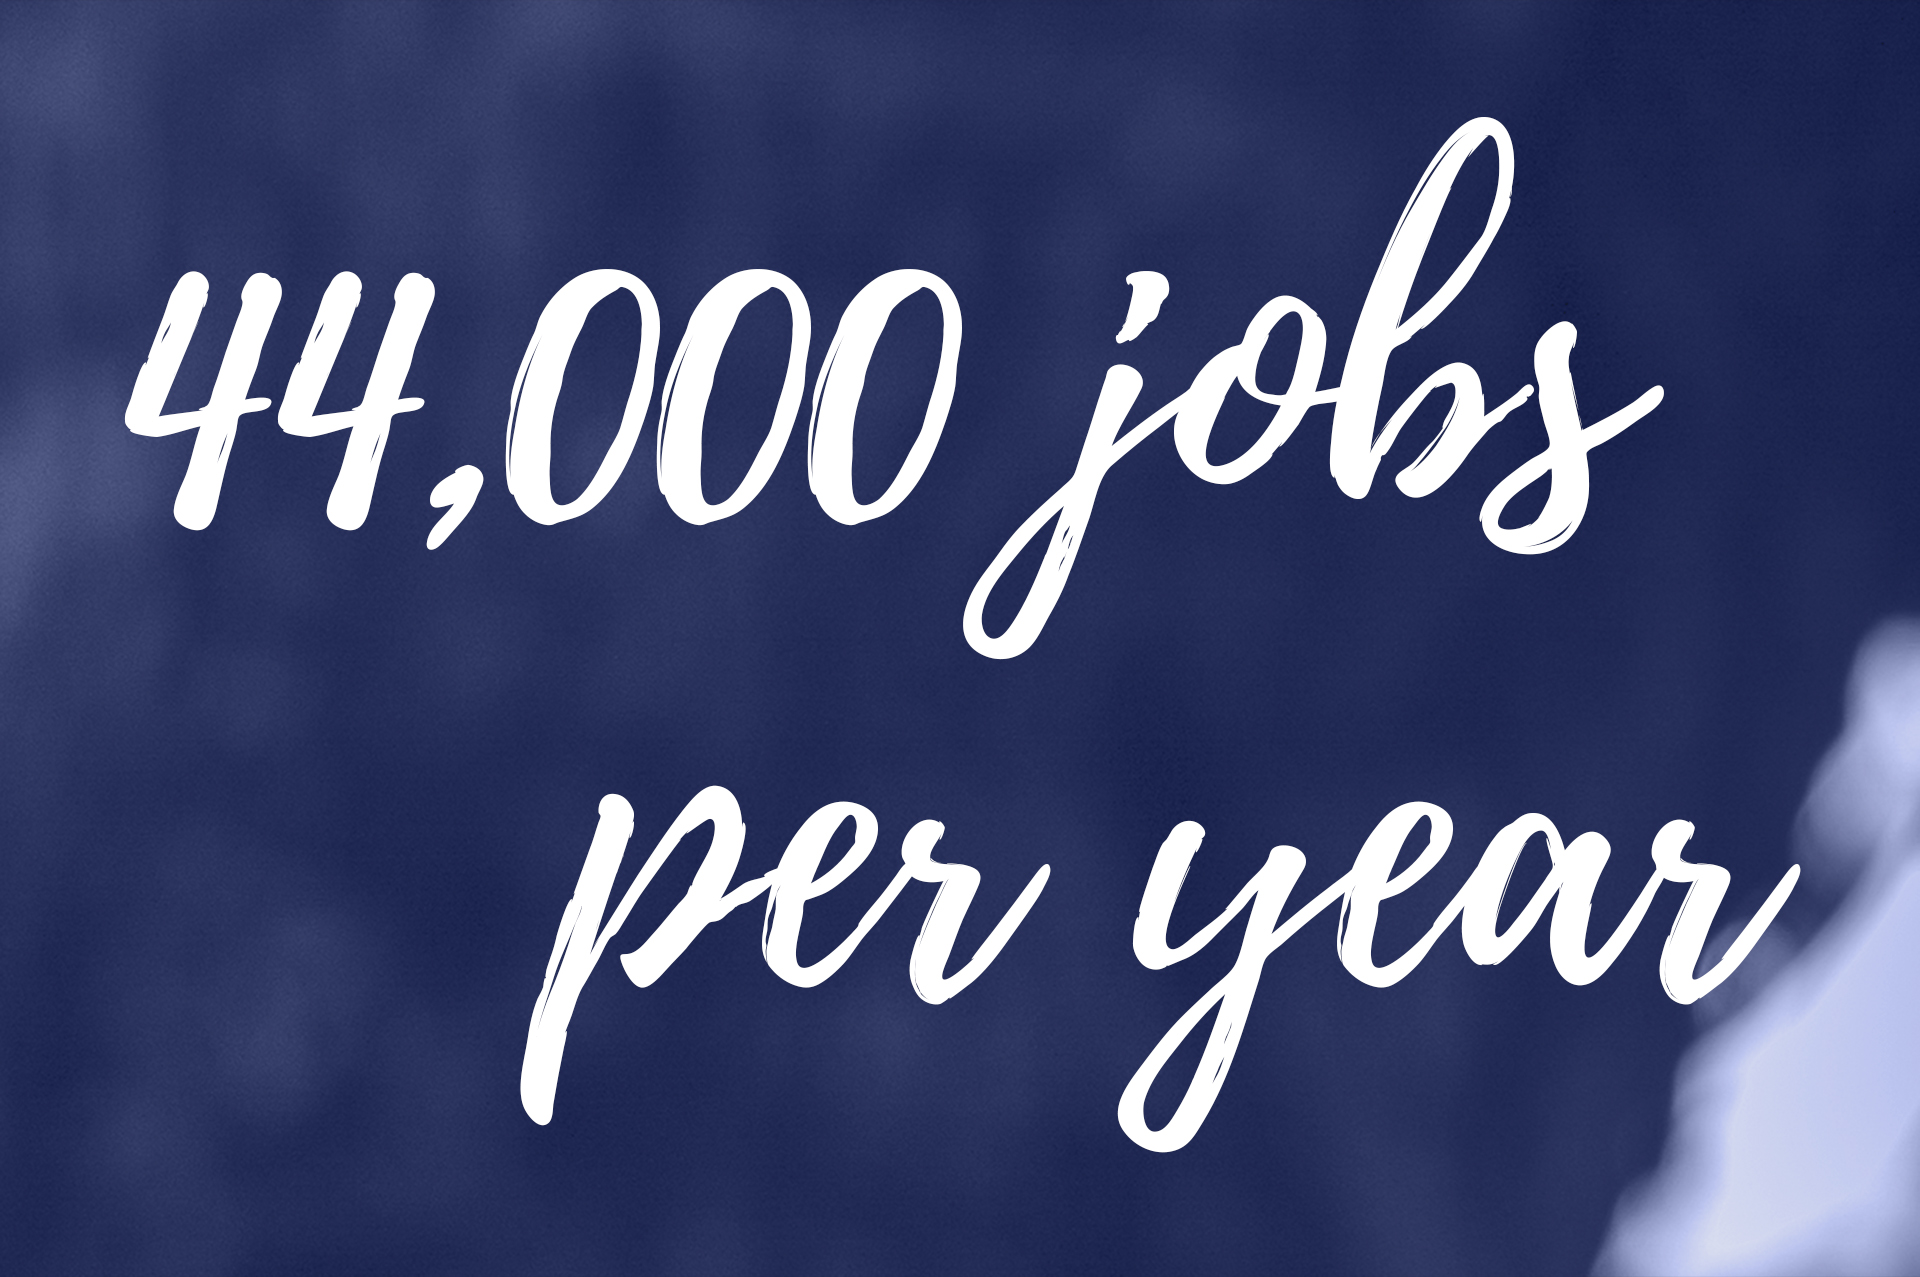 "A header saying ""44,000 jobs per year"""